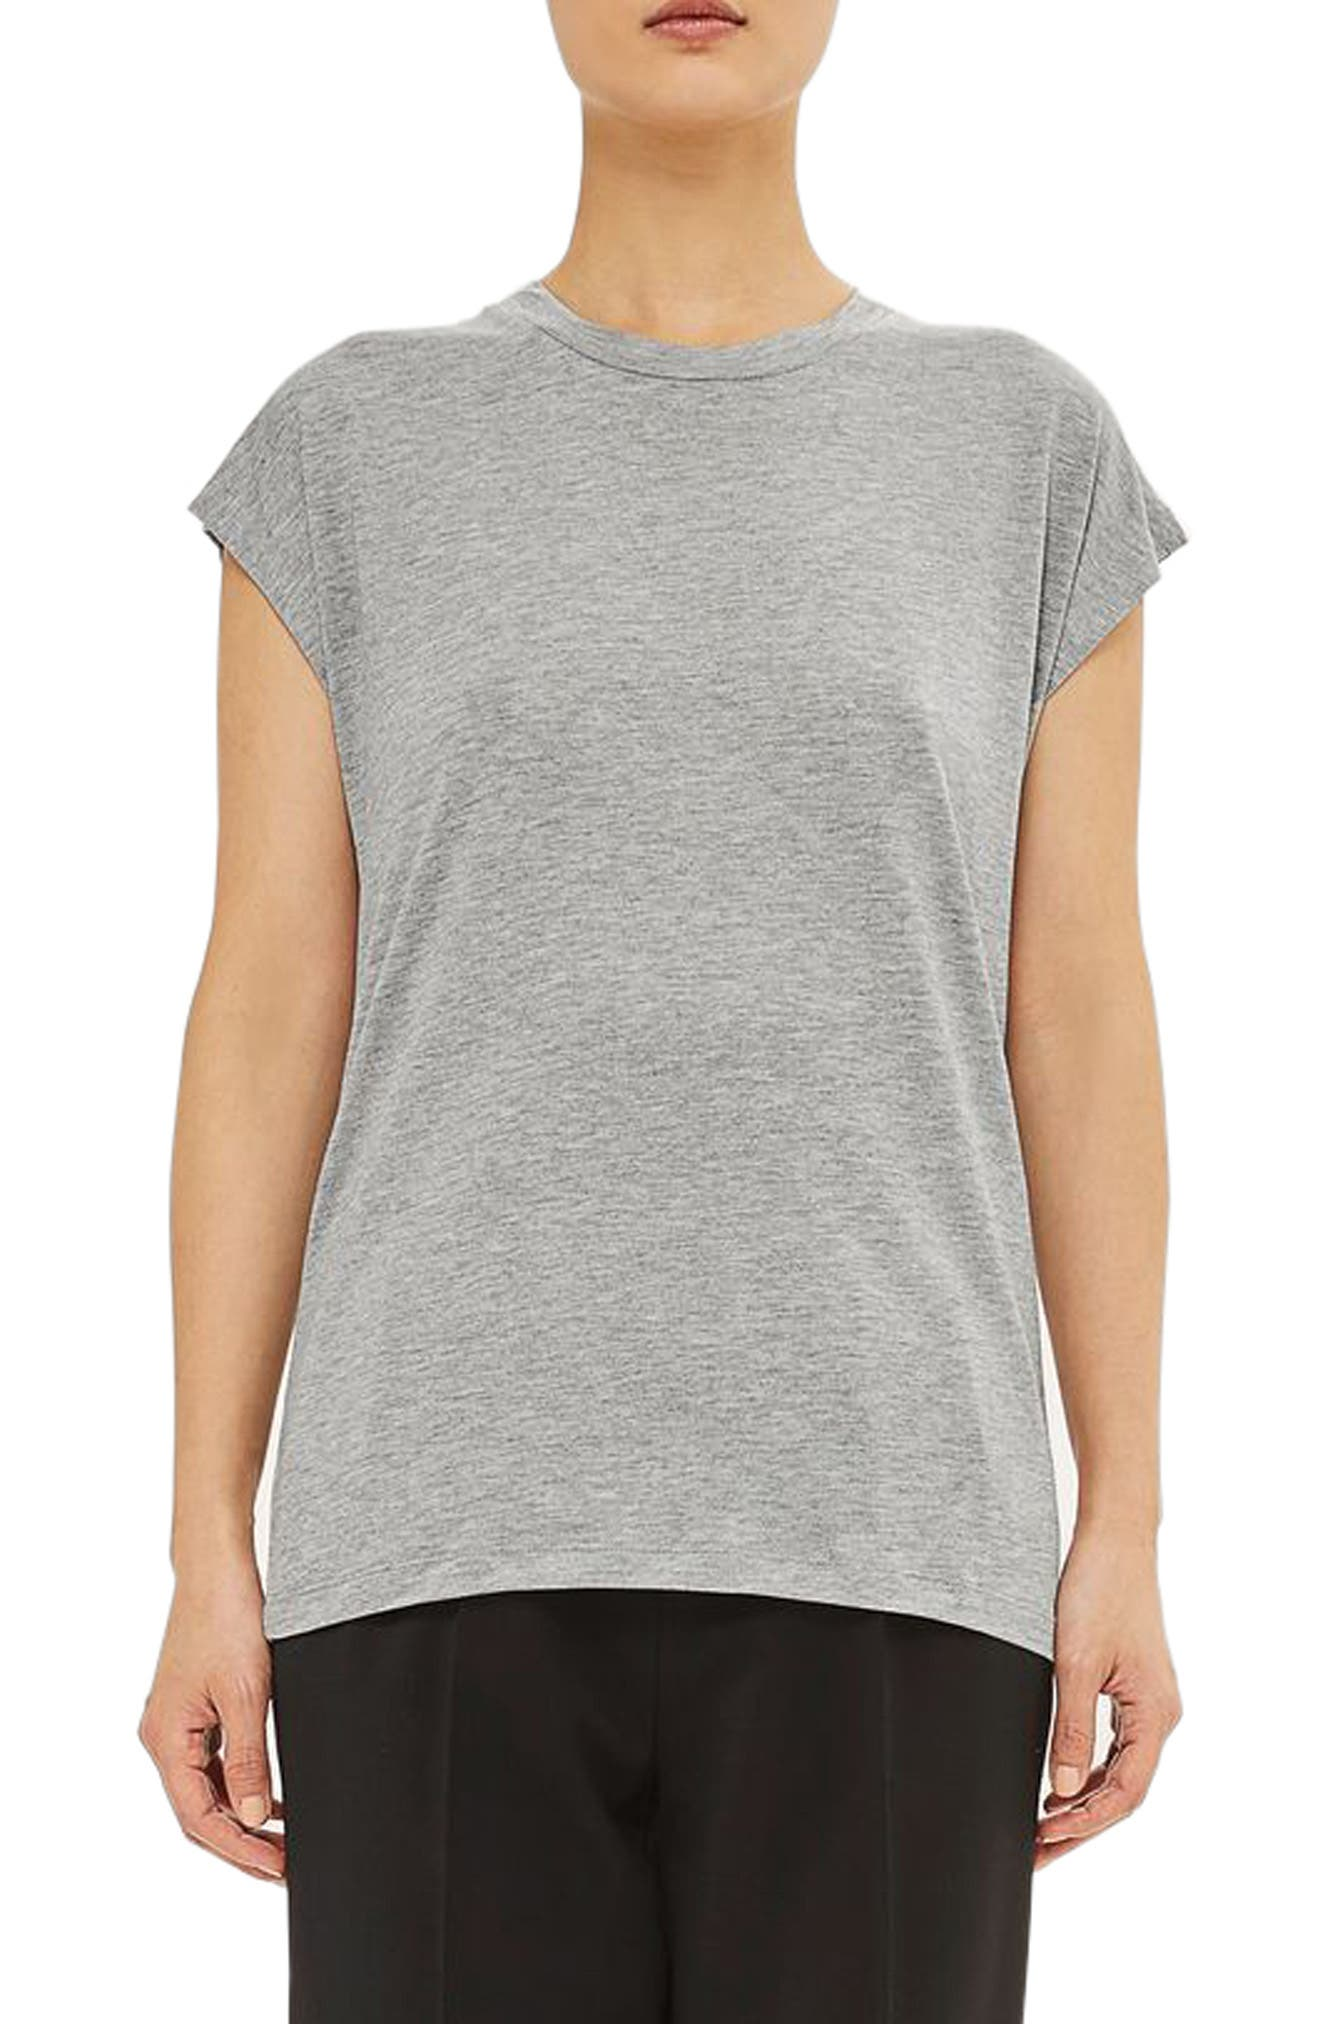 Topshop Boutique Tee